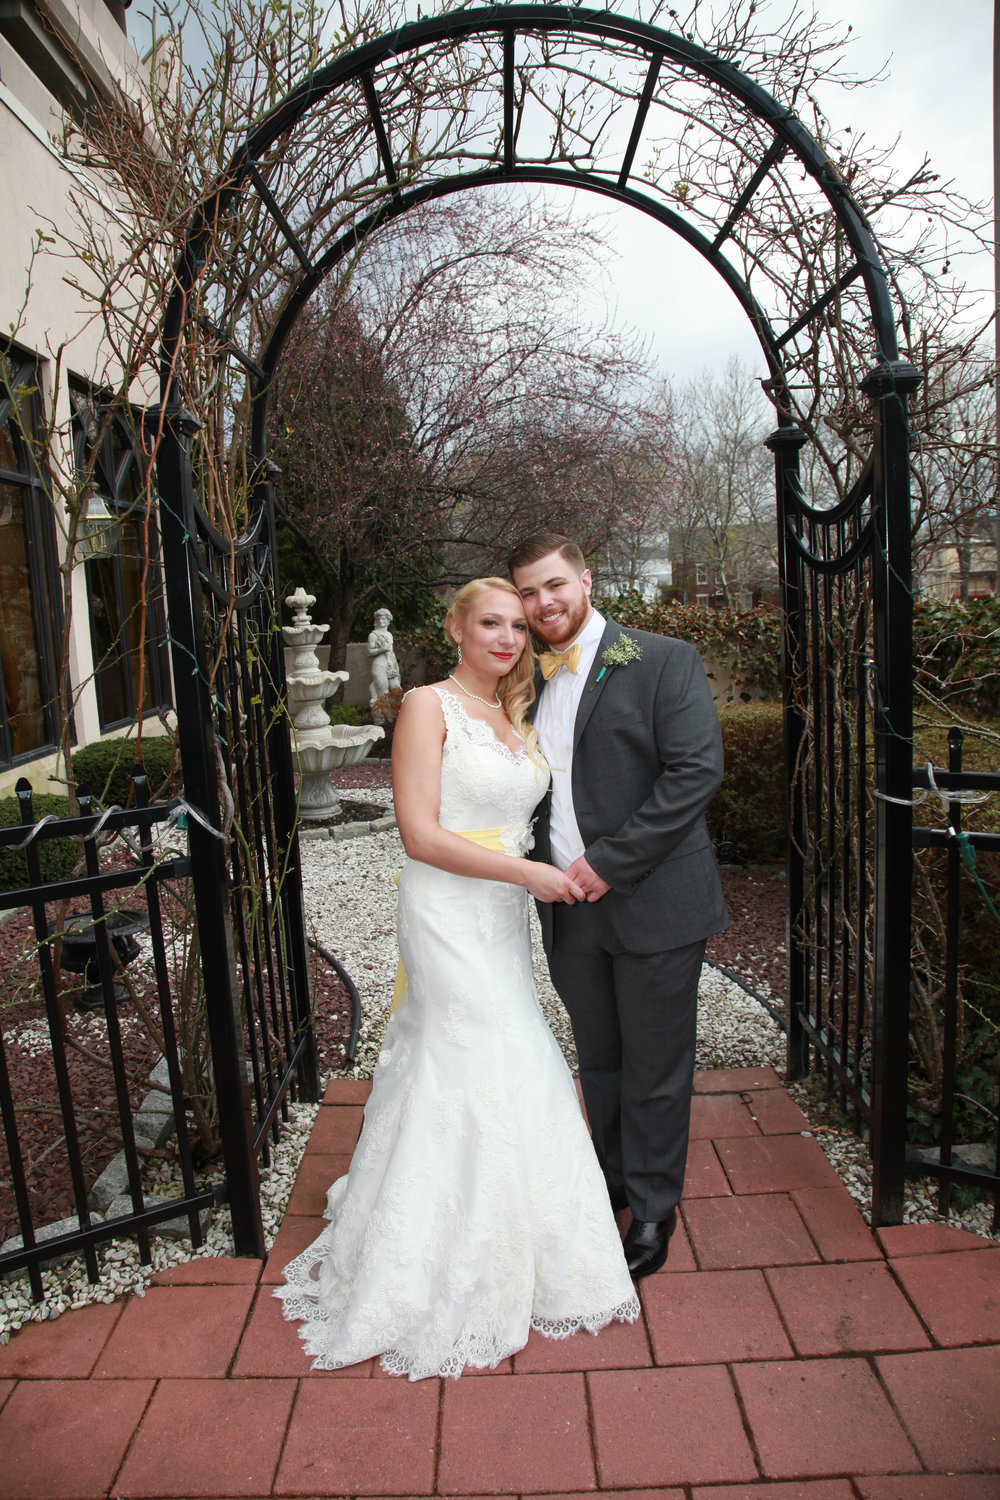 Wedding-Photo-on-the-patio-of-the-Poughkeepsie-Grand.jpg